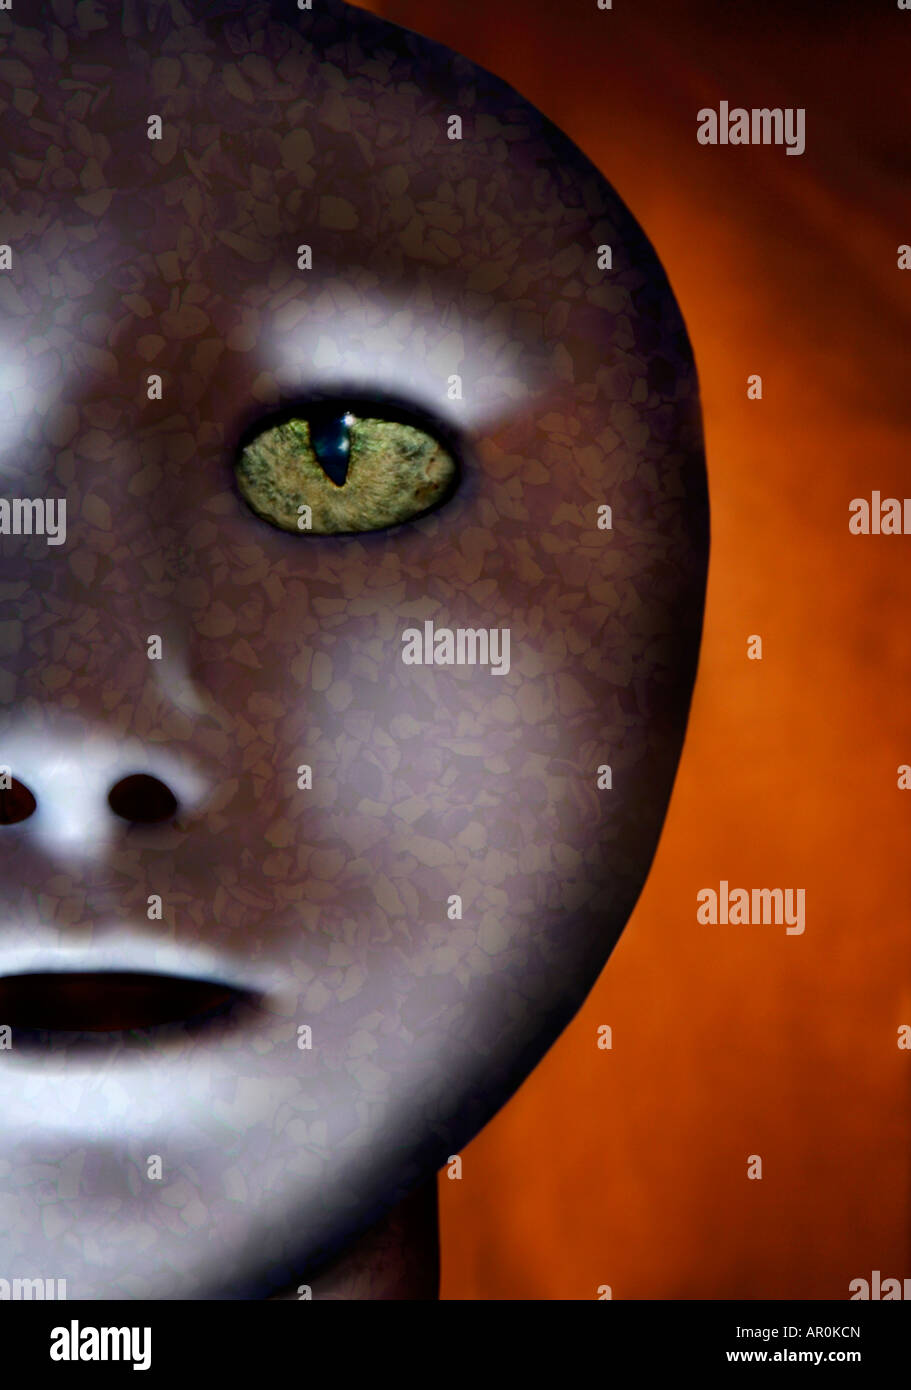 Alien Face. - Stock Image